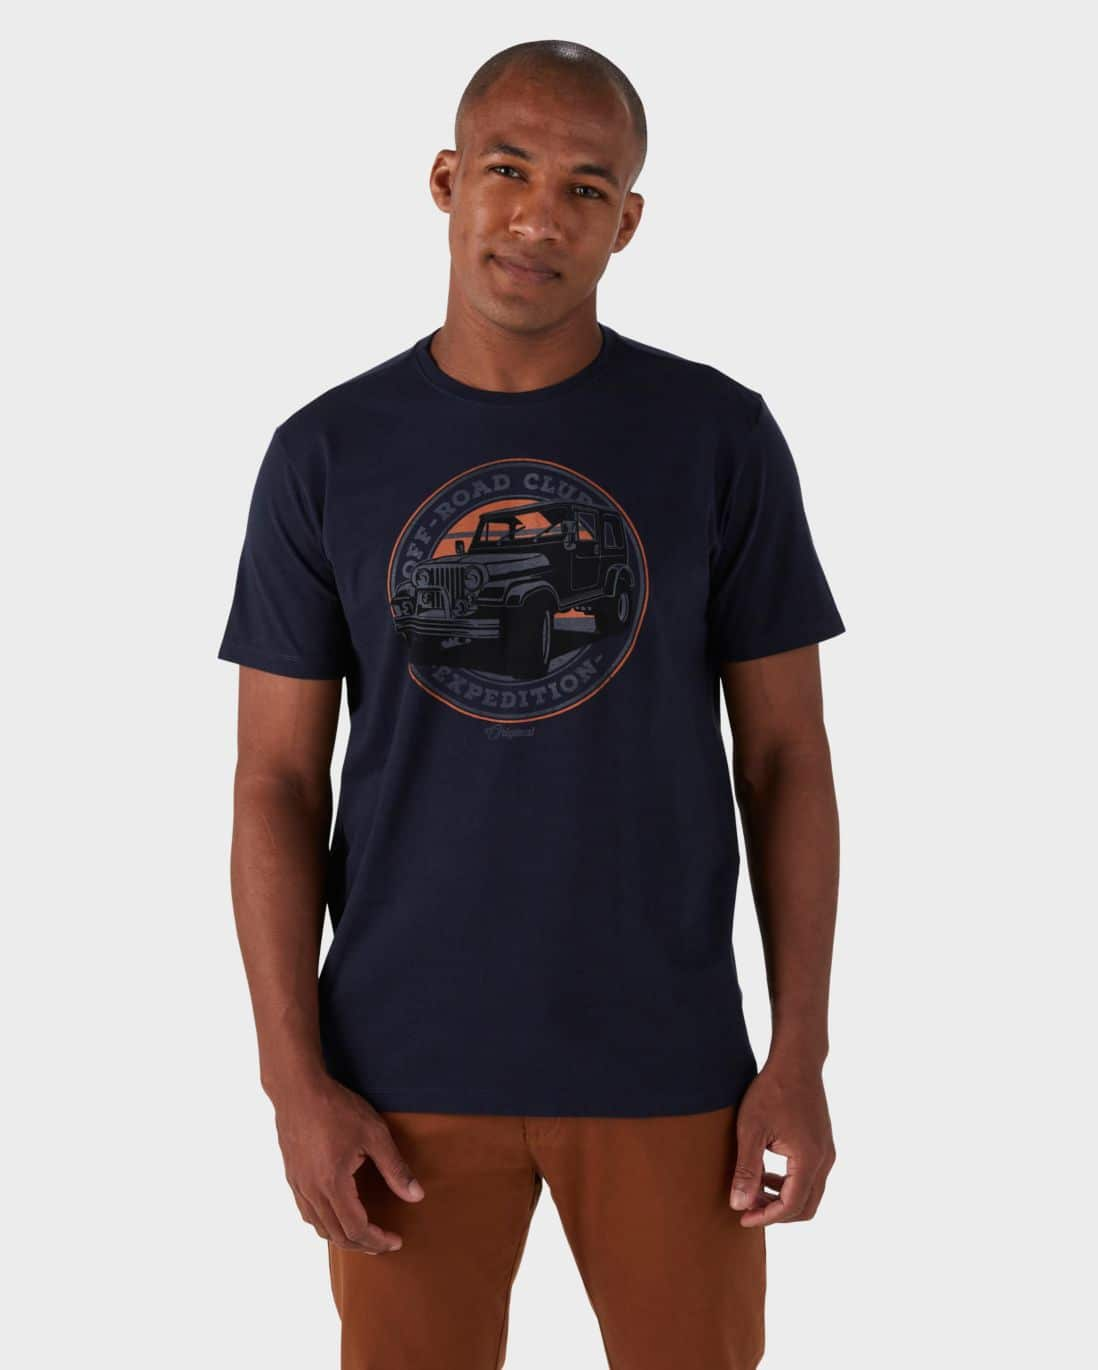 Camiseta Off Road Club - Azul Marinho